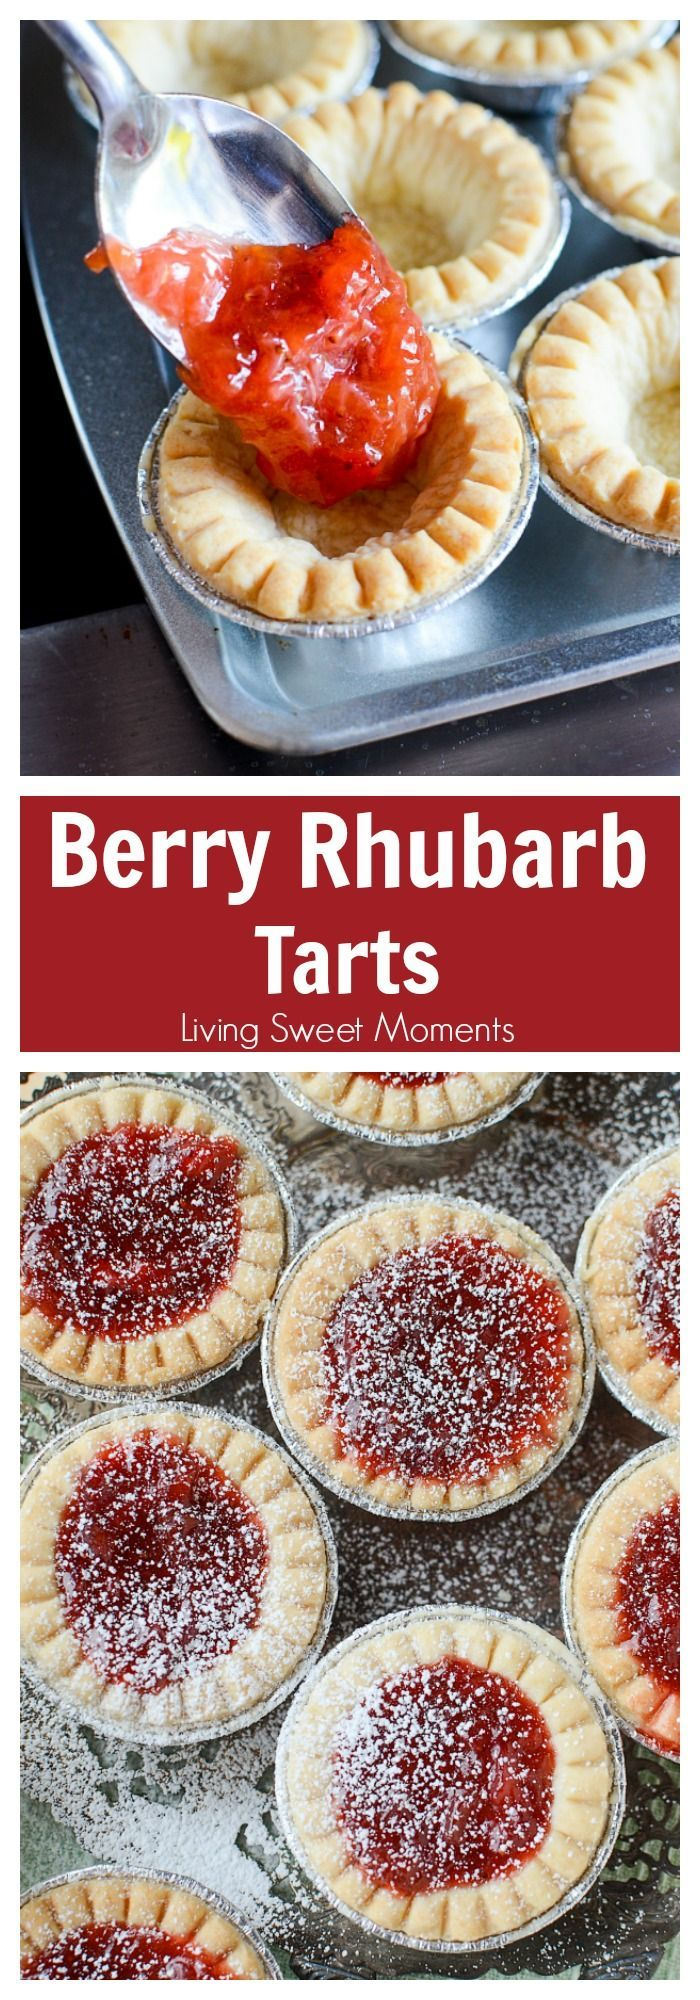 These delicious and tangy Strawberry Rhubarb Tarts are super easy to make and are the perfect mini desserts for any party. Top them with powdered sugar. More dessert recipes at livingsweetmoments.com via @Livingsmoments